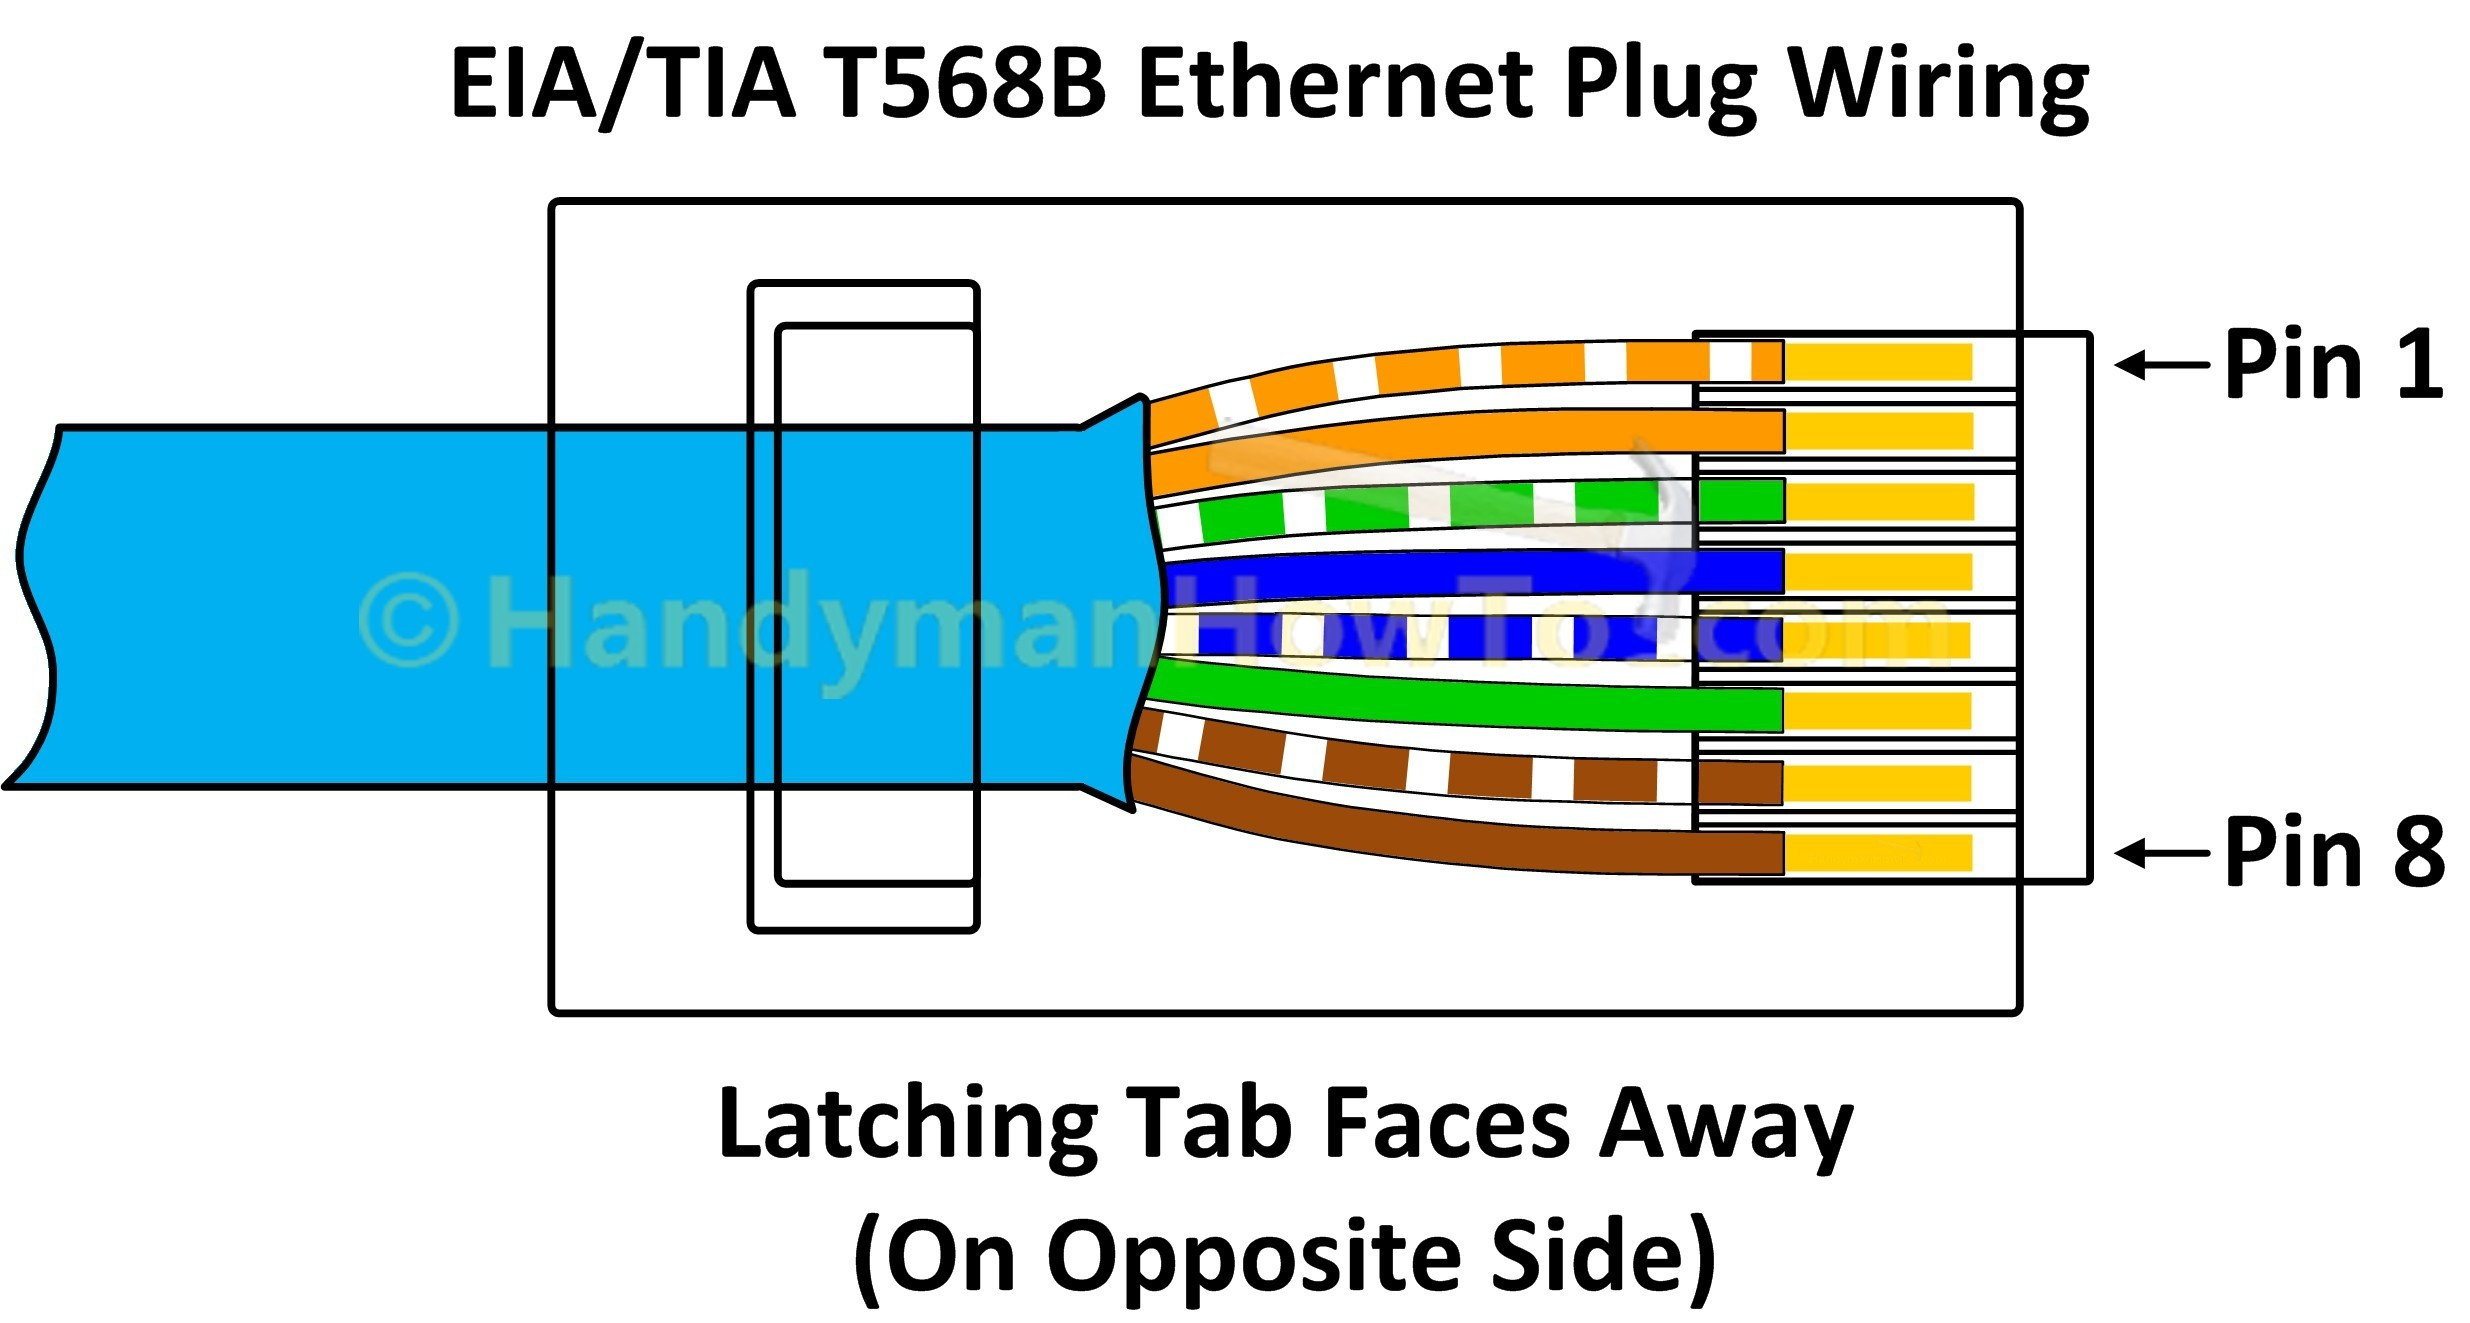 Ethernet Wiring Diagram Rj45 New Ethernet Cable Wiring Diagram Unique Unique Wiring Diagram for Cat5